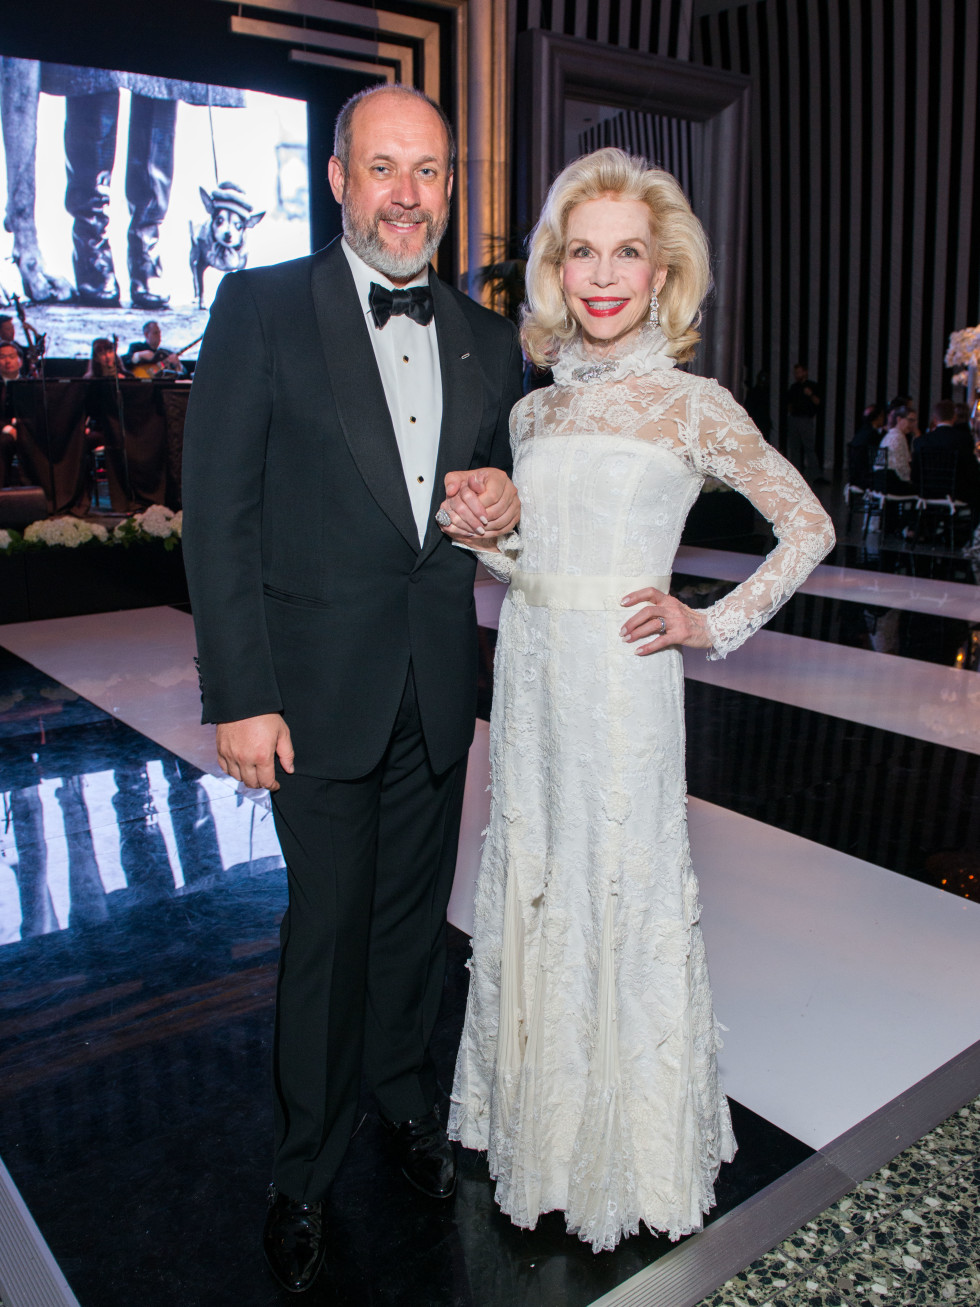 News, Shelby, MFAH gala gowns, Oct. 2015 Lynn Wyatt with Peter Copping